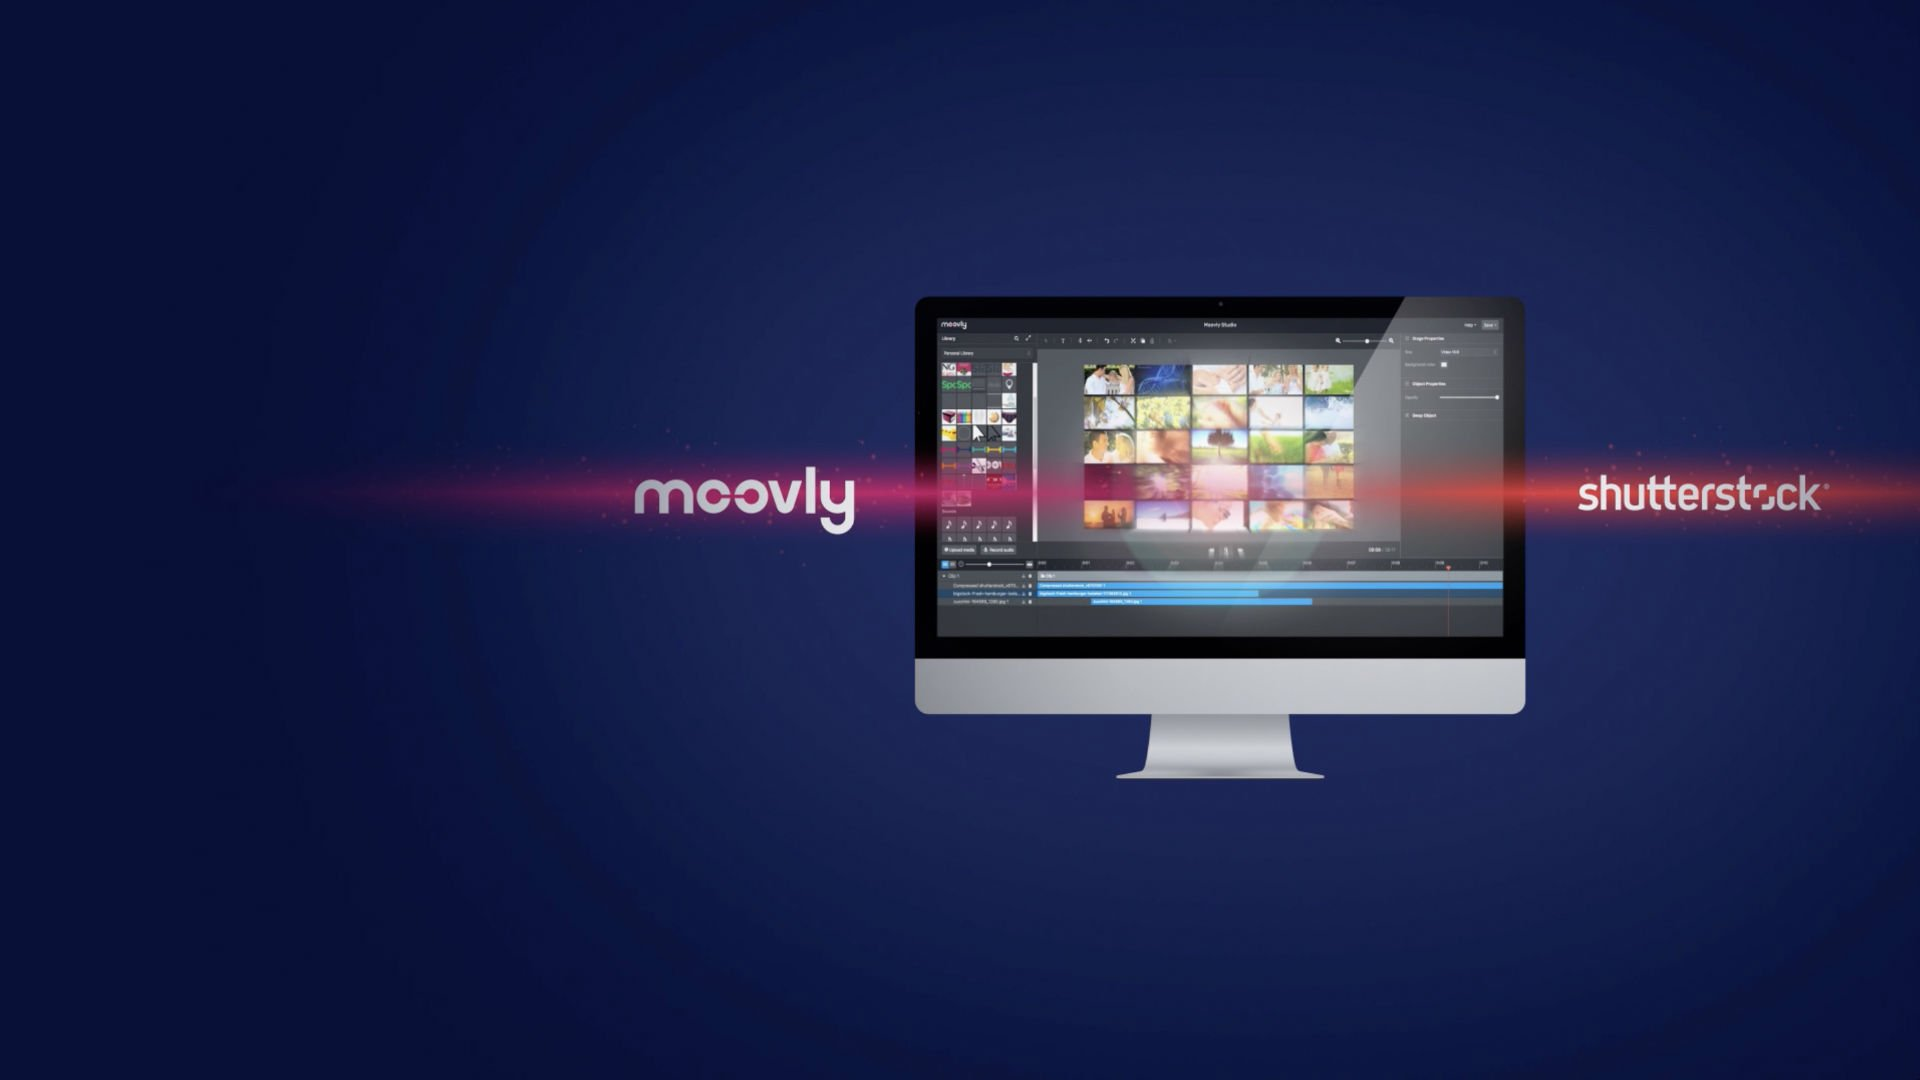 Moovly Shutterstock Collaboration for Video Content